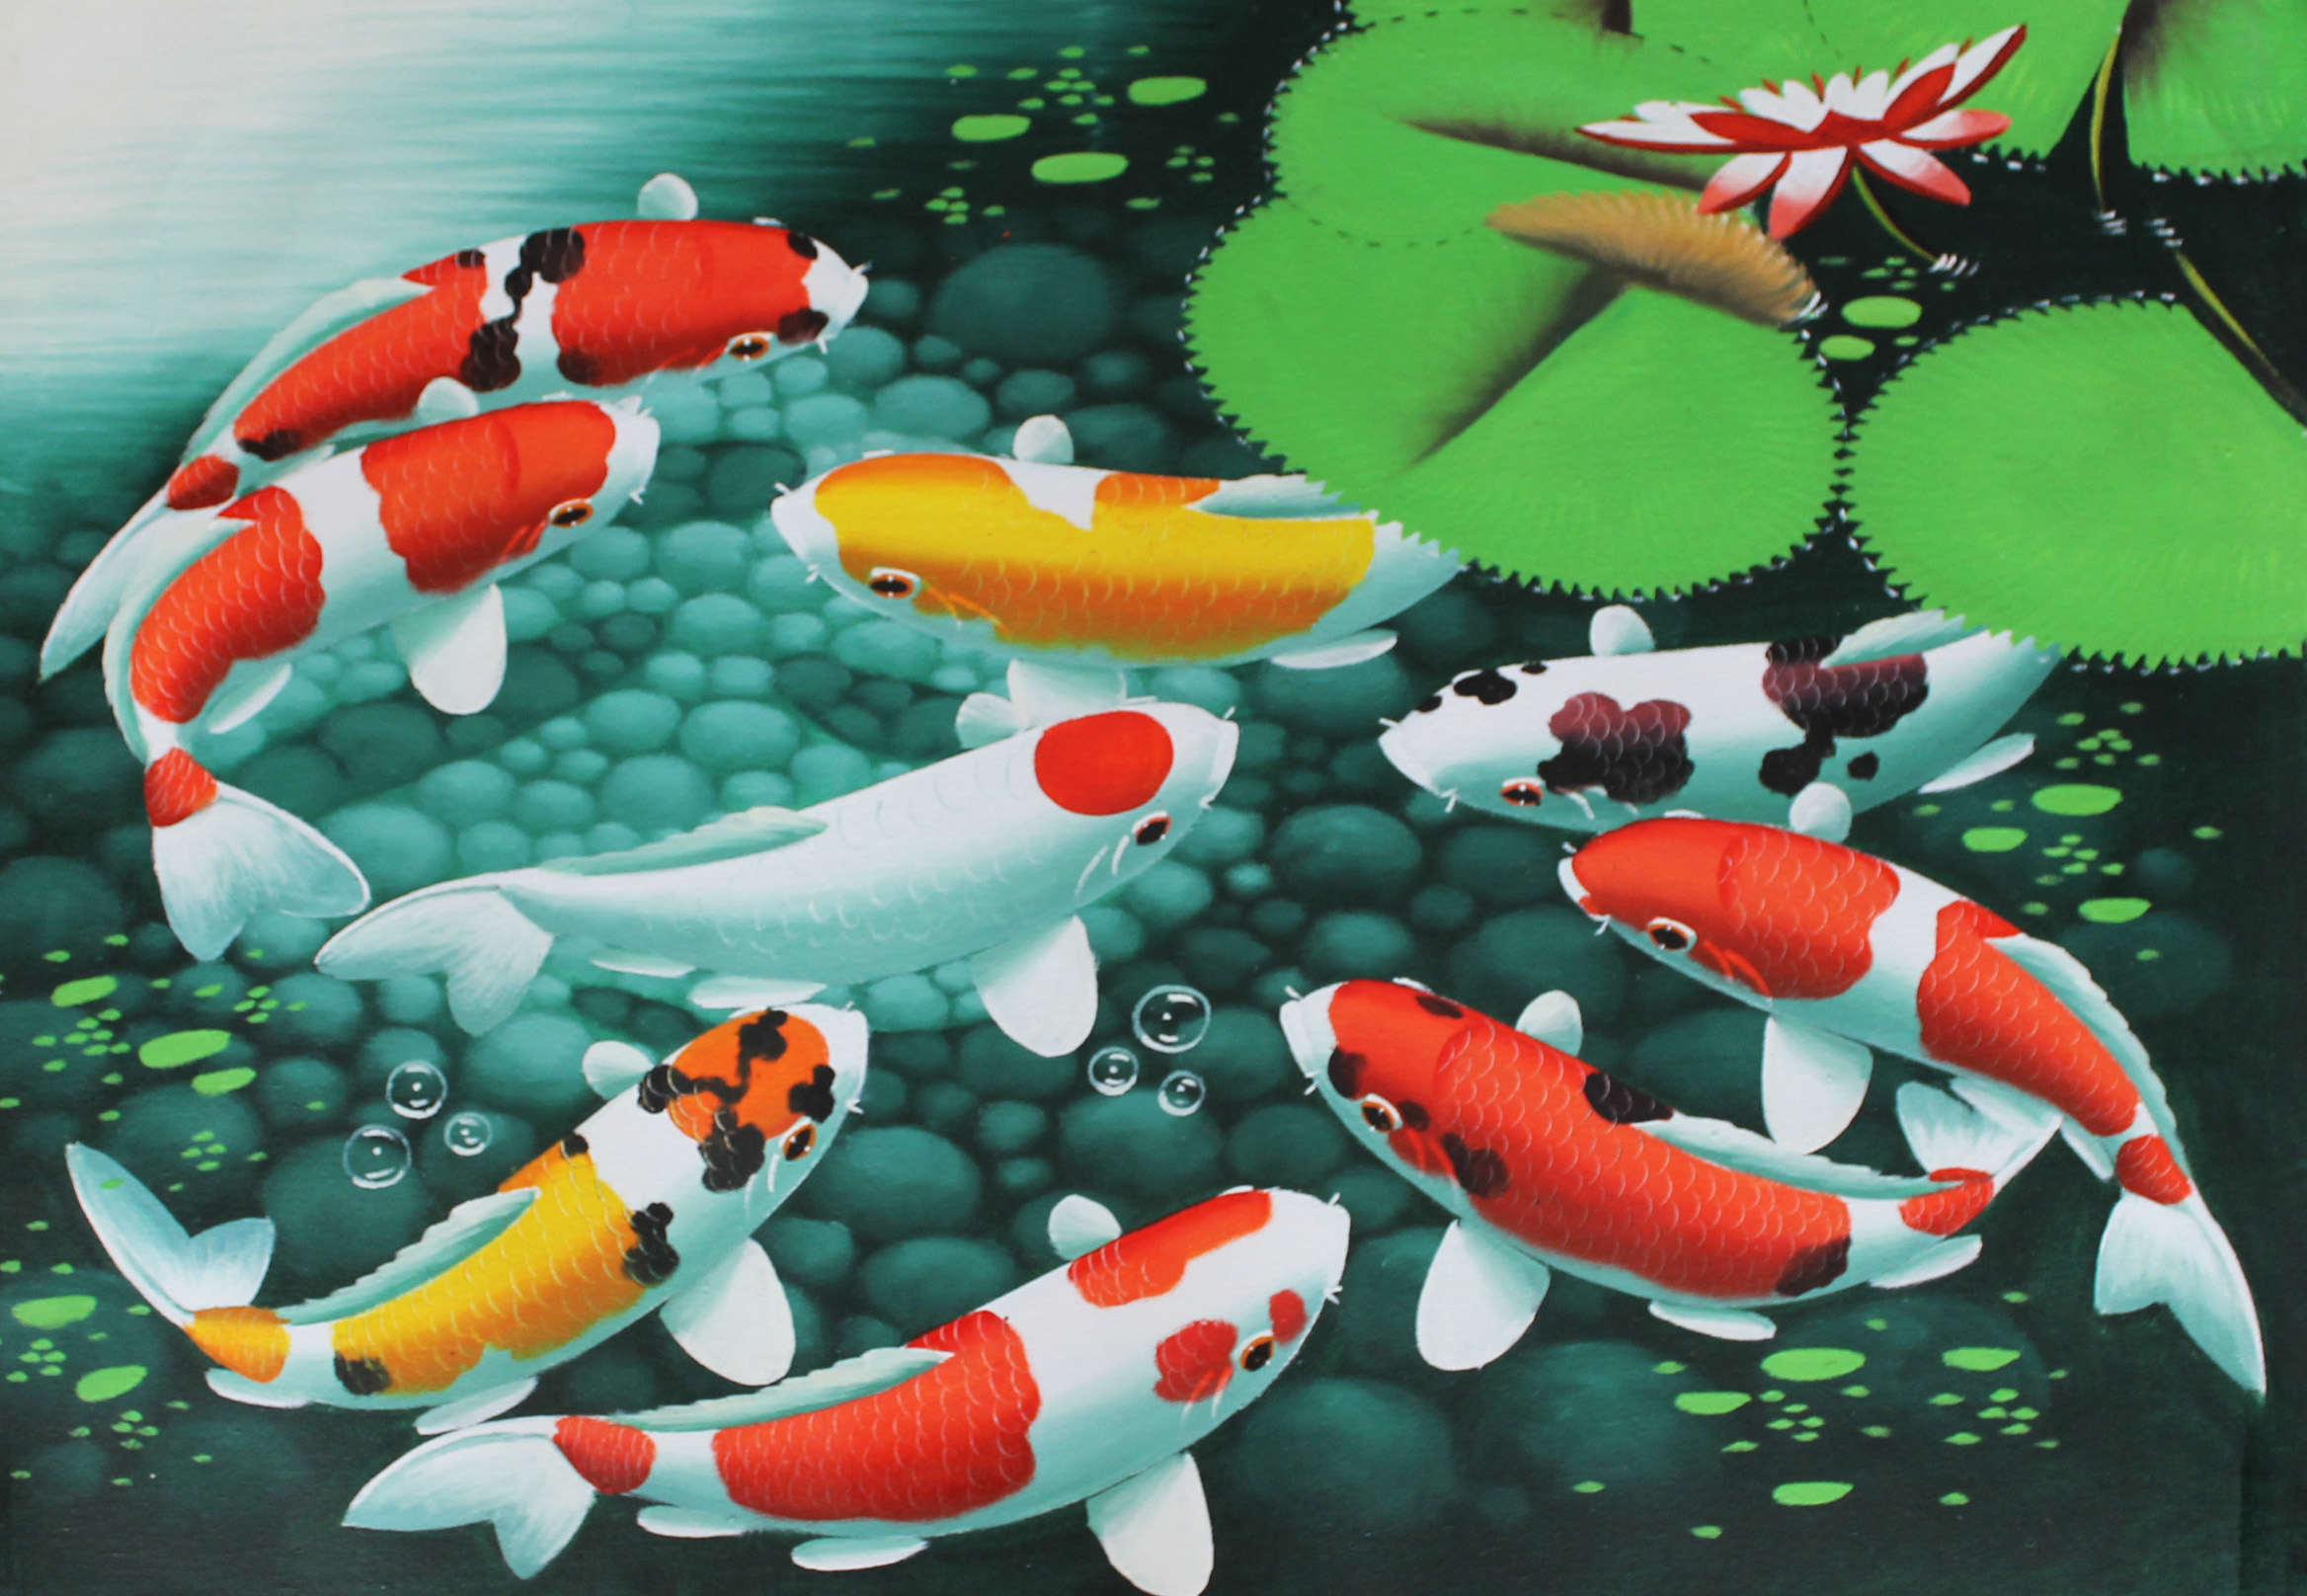 Fishes watercolor wallpapers high quality download free - Carp wallpaper iphone ...